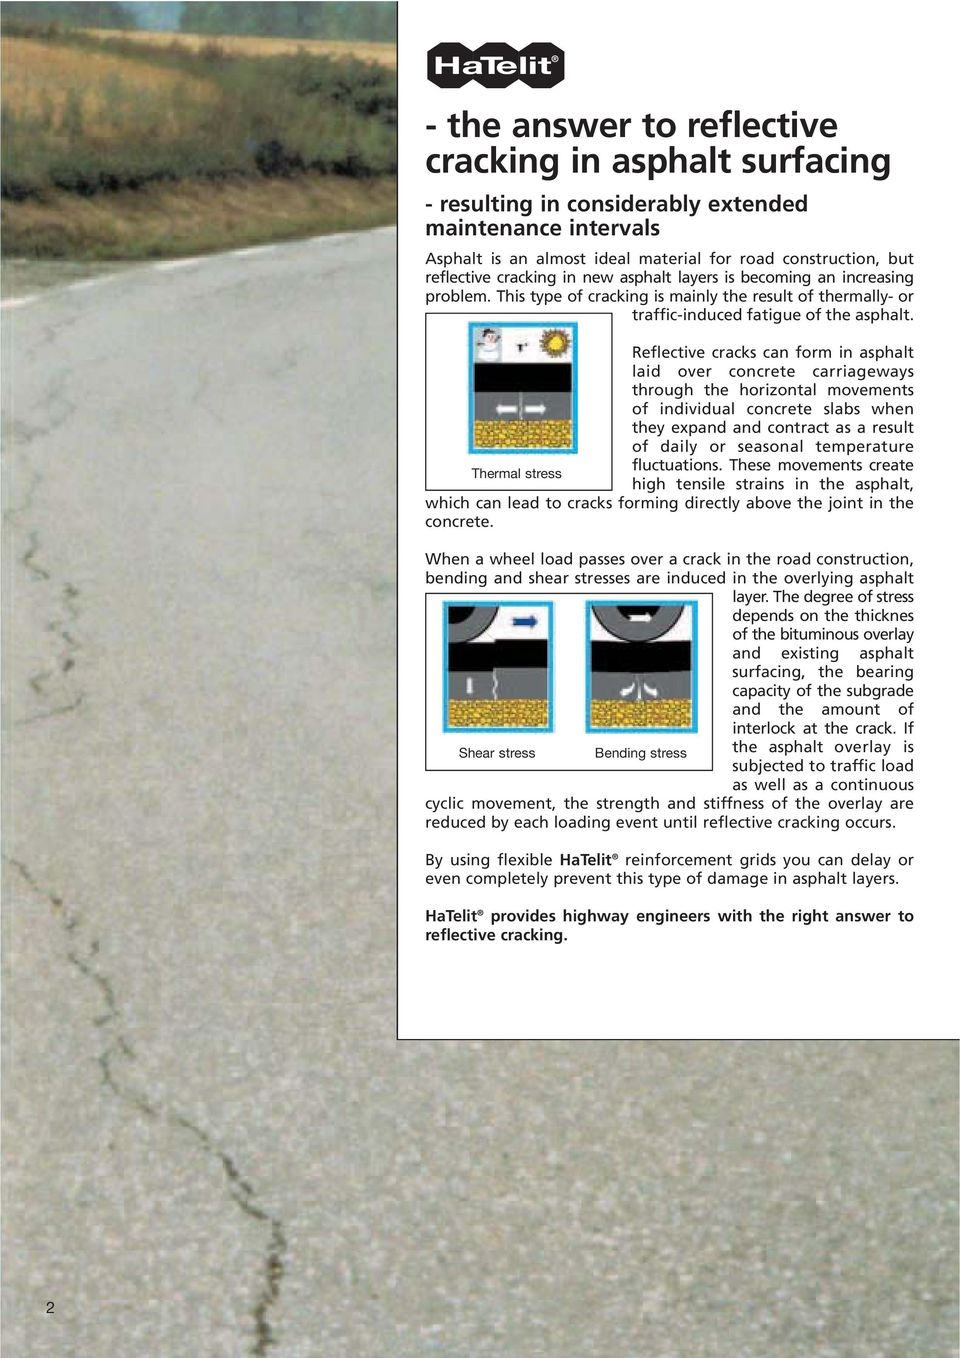 Reflective cracks can form in asphalt laid over concrete carriageways through the horizontal movements of individual concrete slabs when they expand and contract as a result of daily or seasonal